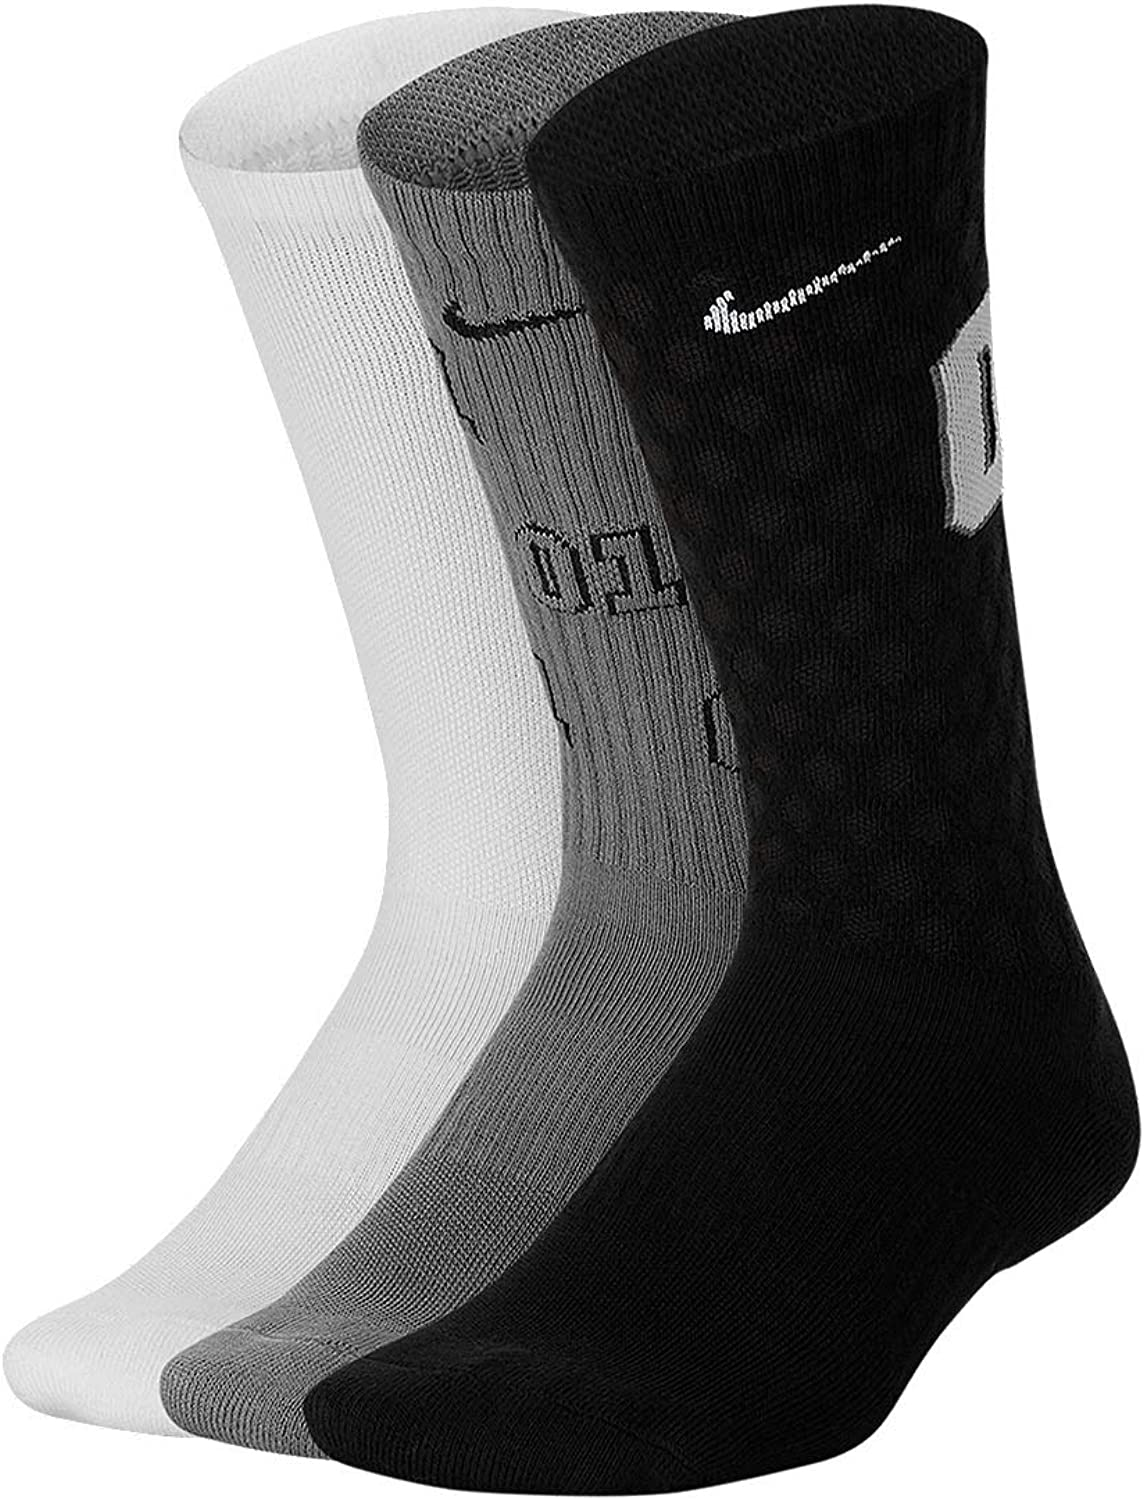 Nike Boy`s Everyday Cushioned Crew Graphic Socks 3 Pack